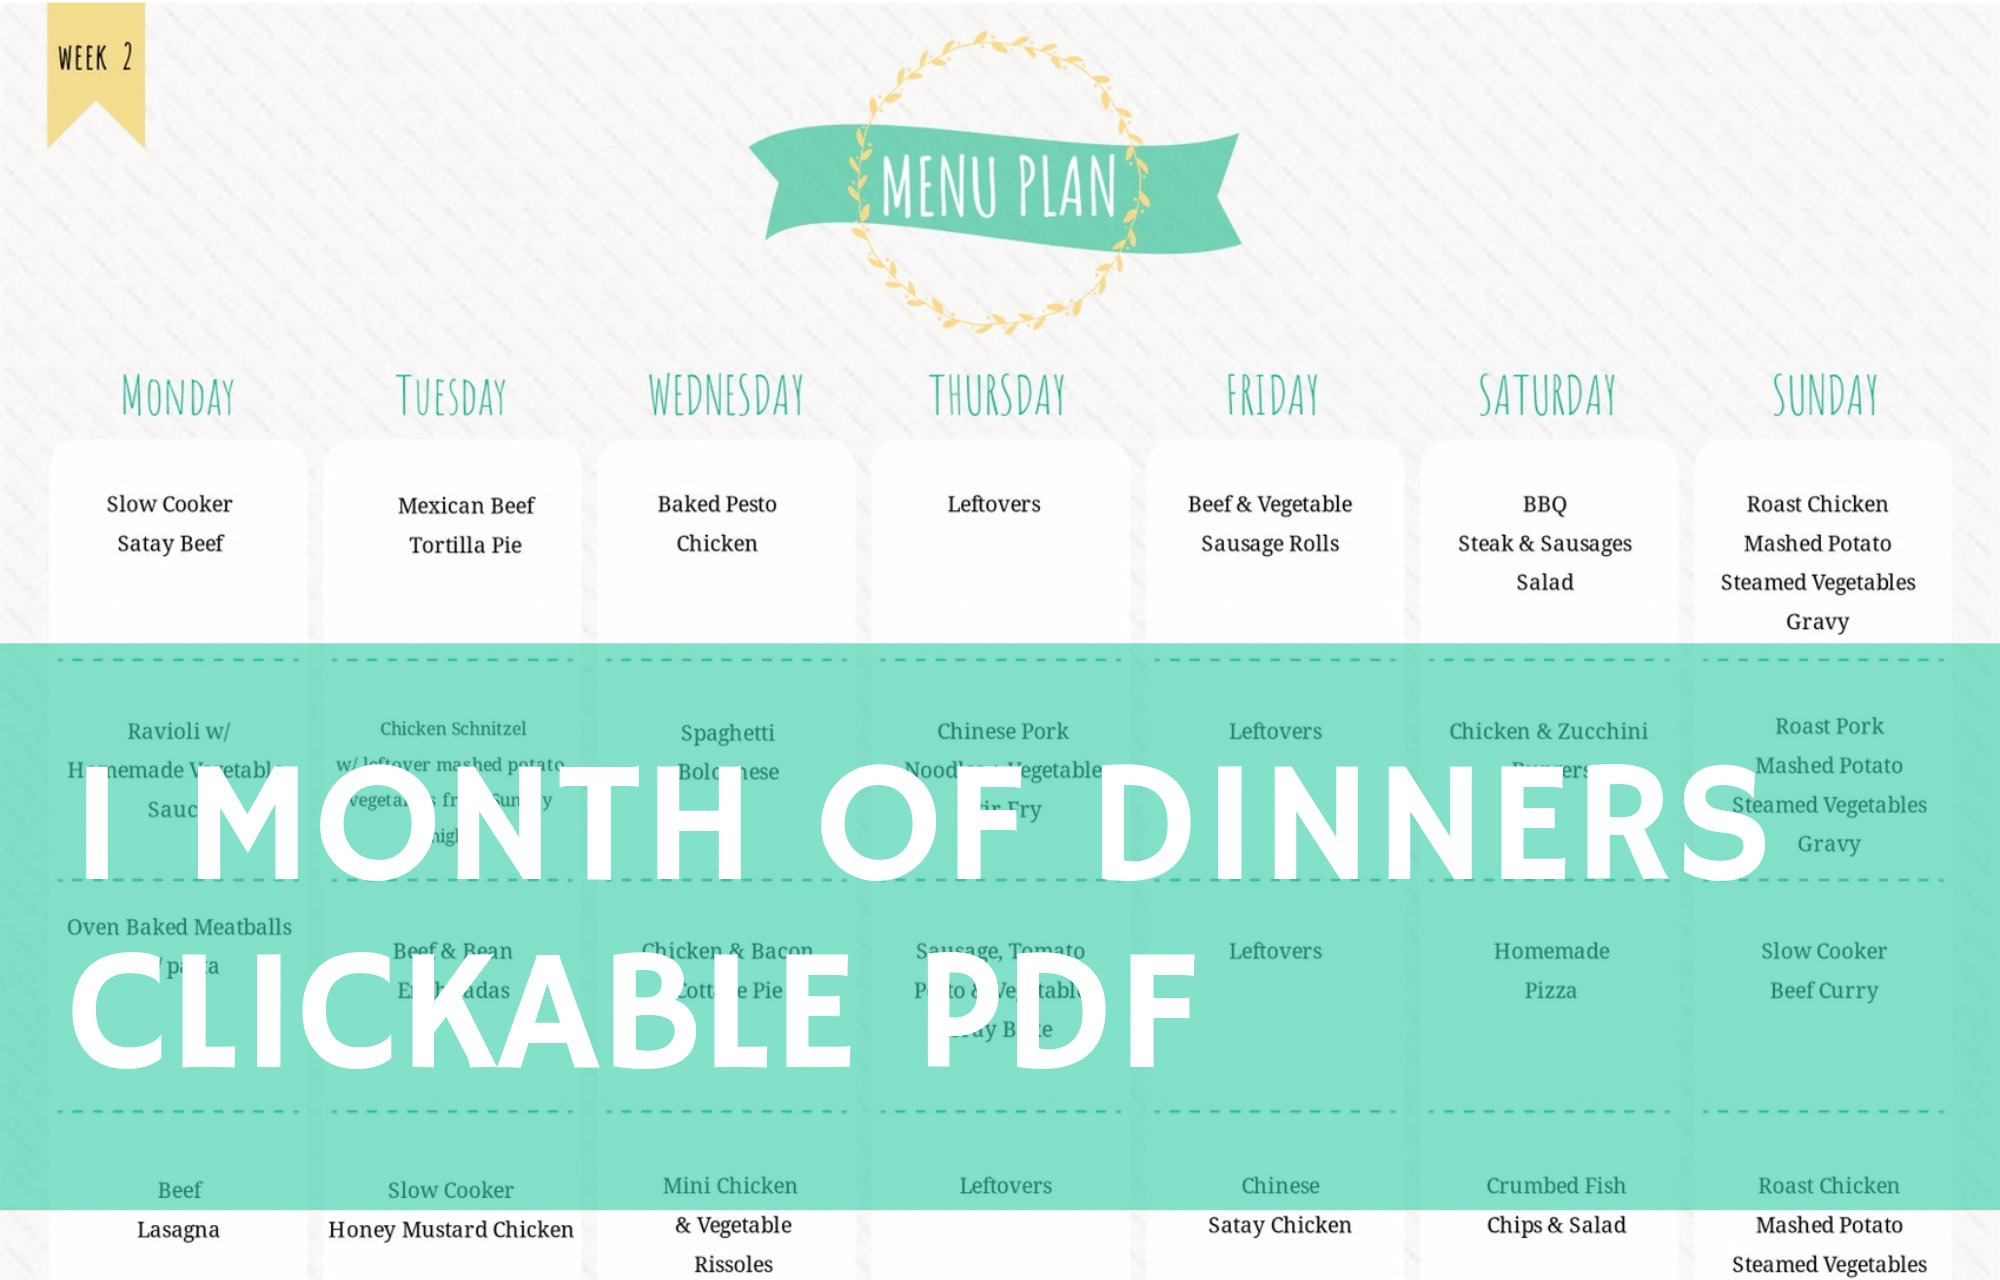 1 Month of Dinners - Clickable PDF to Recipes